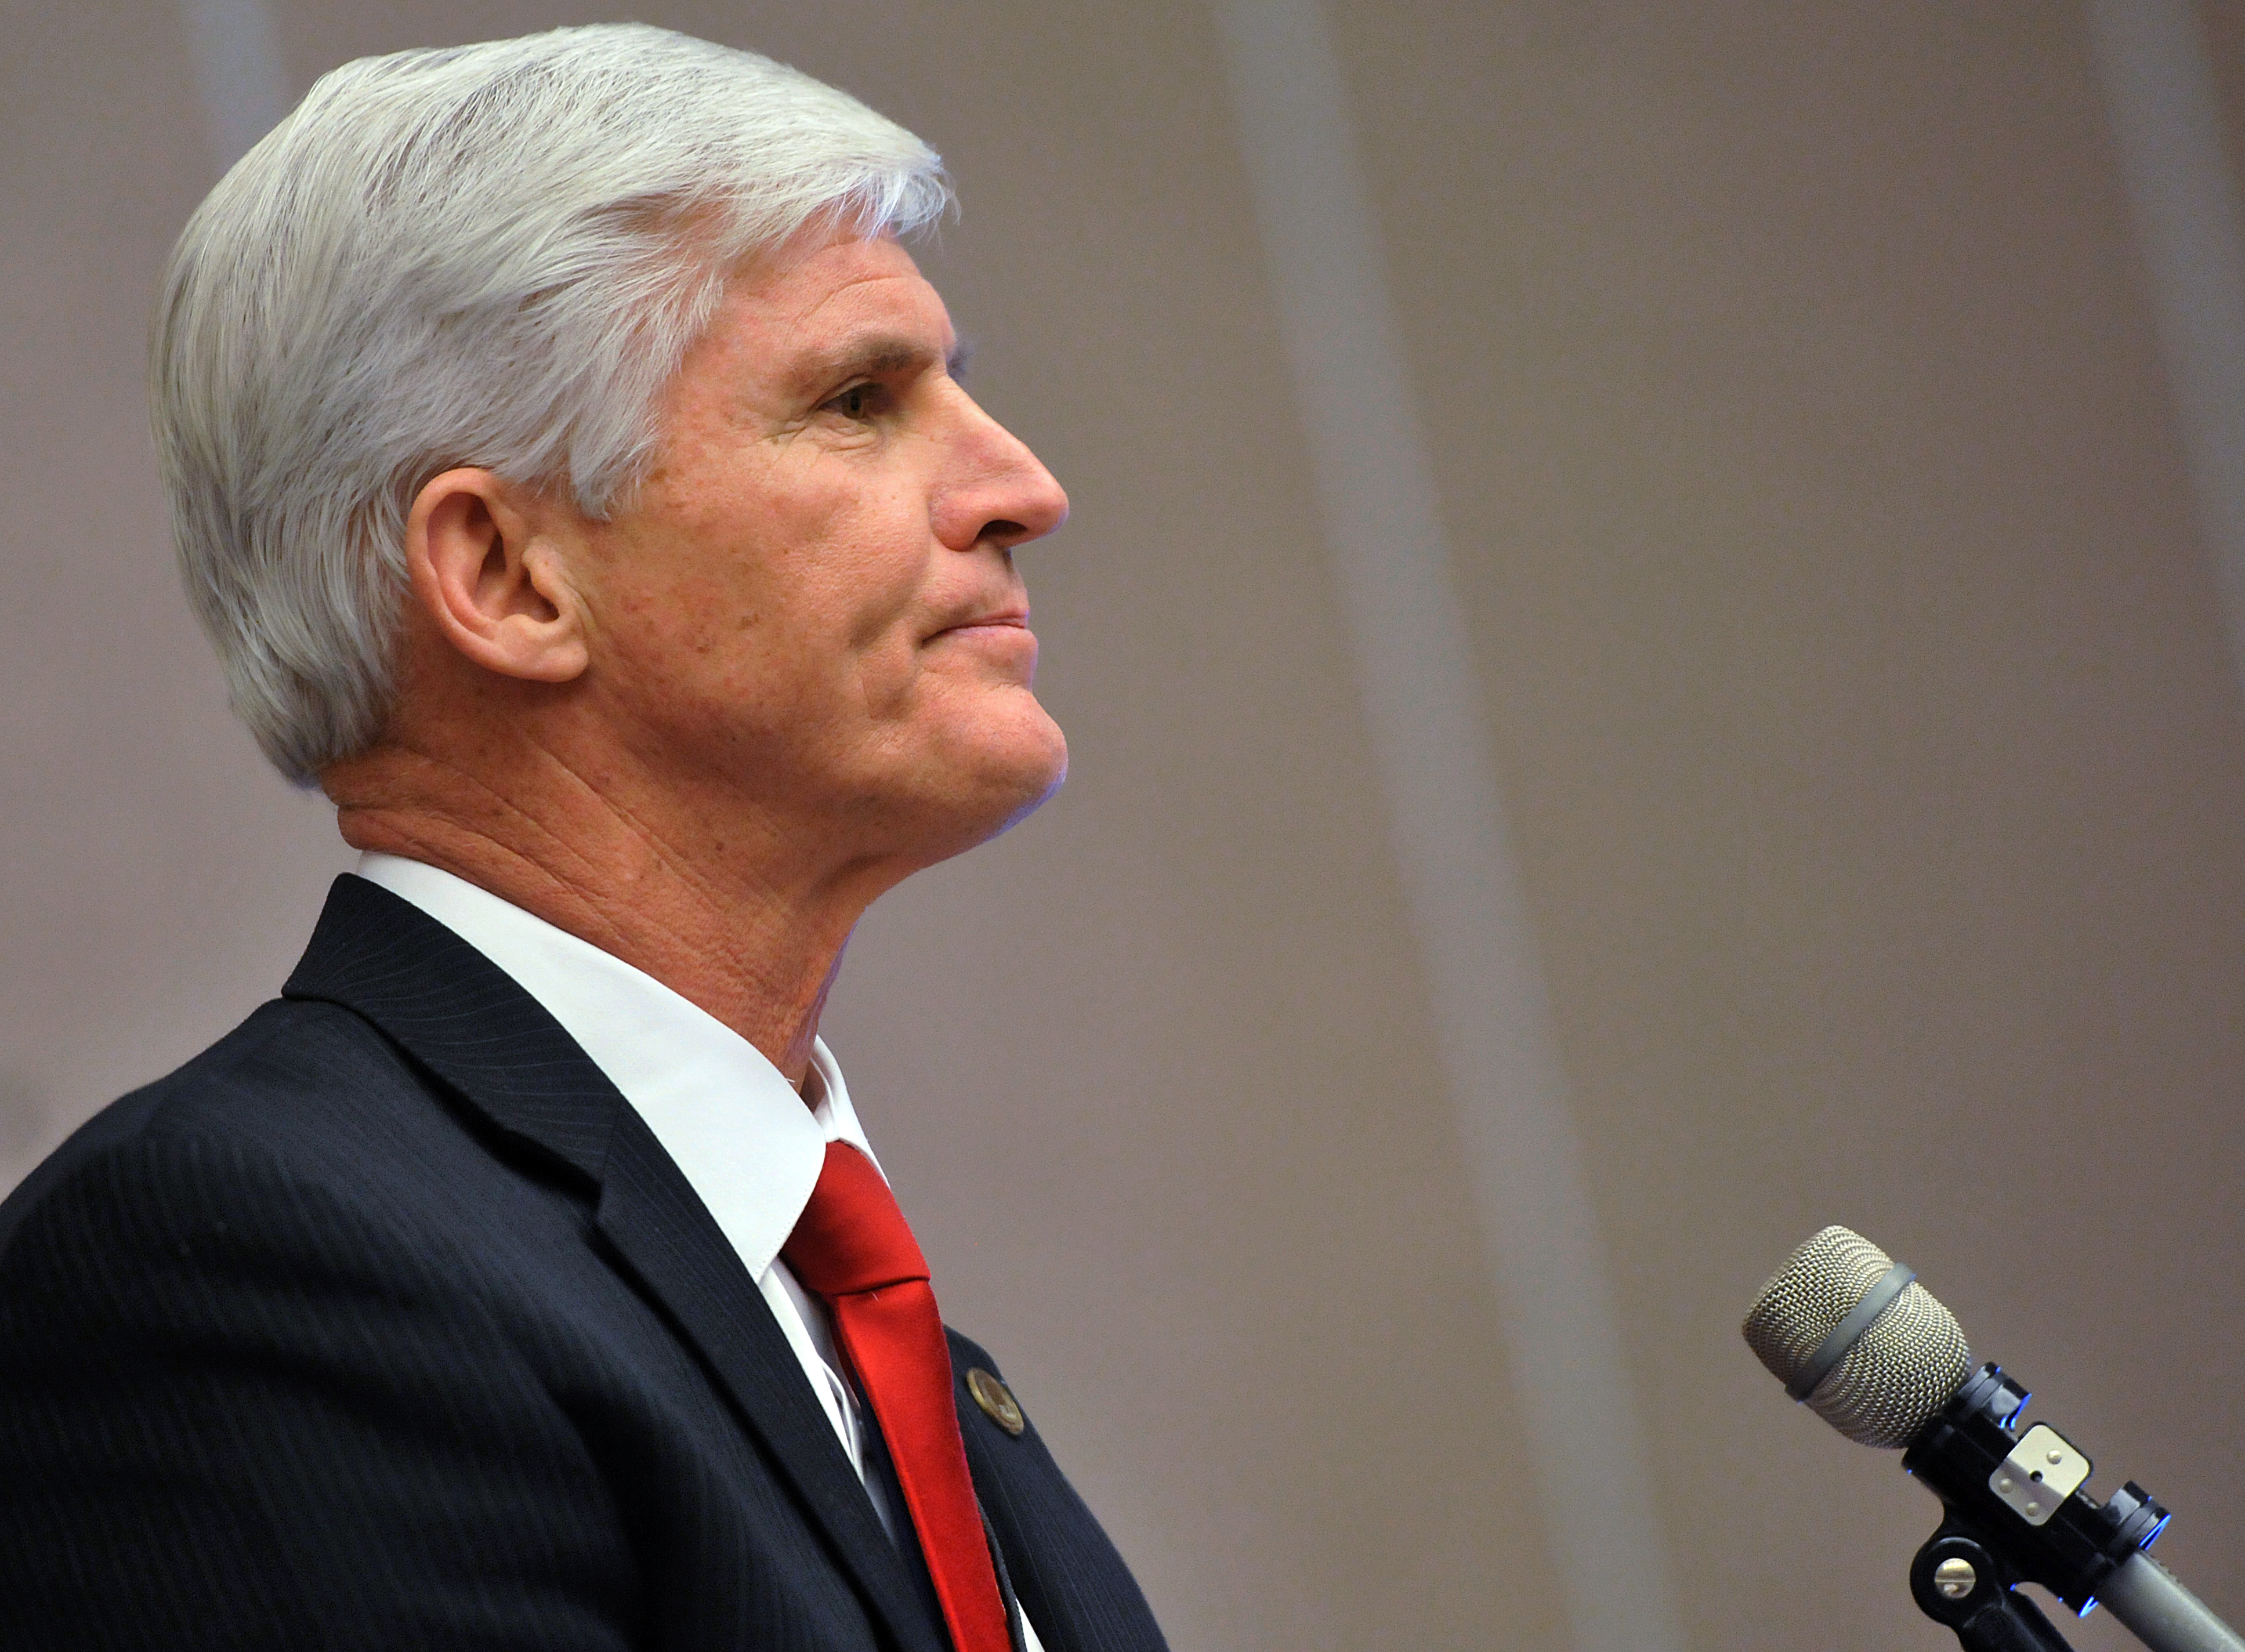 Republican National Committeeman Dave Agema speaks in Lansing, Mich. on Dec. 14, 2013.